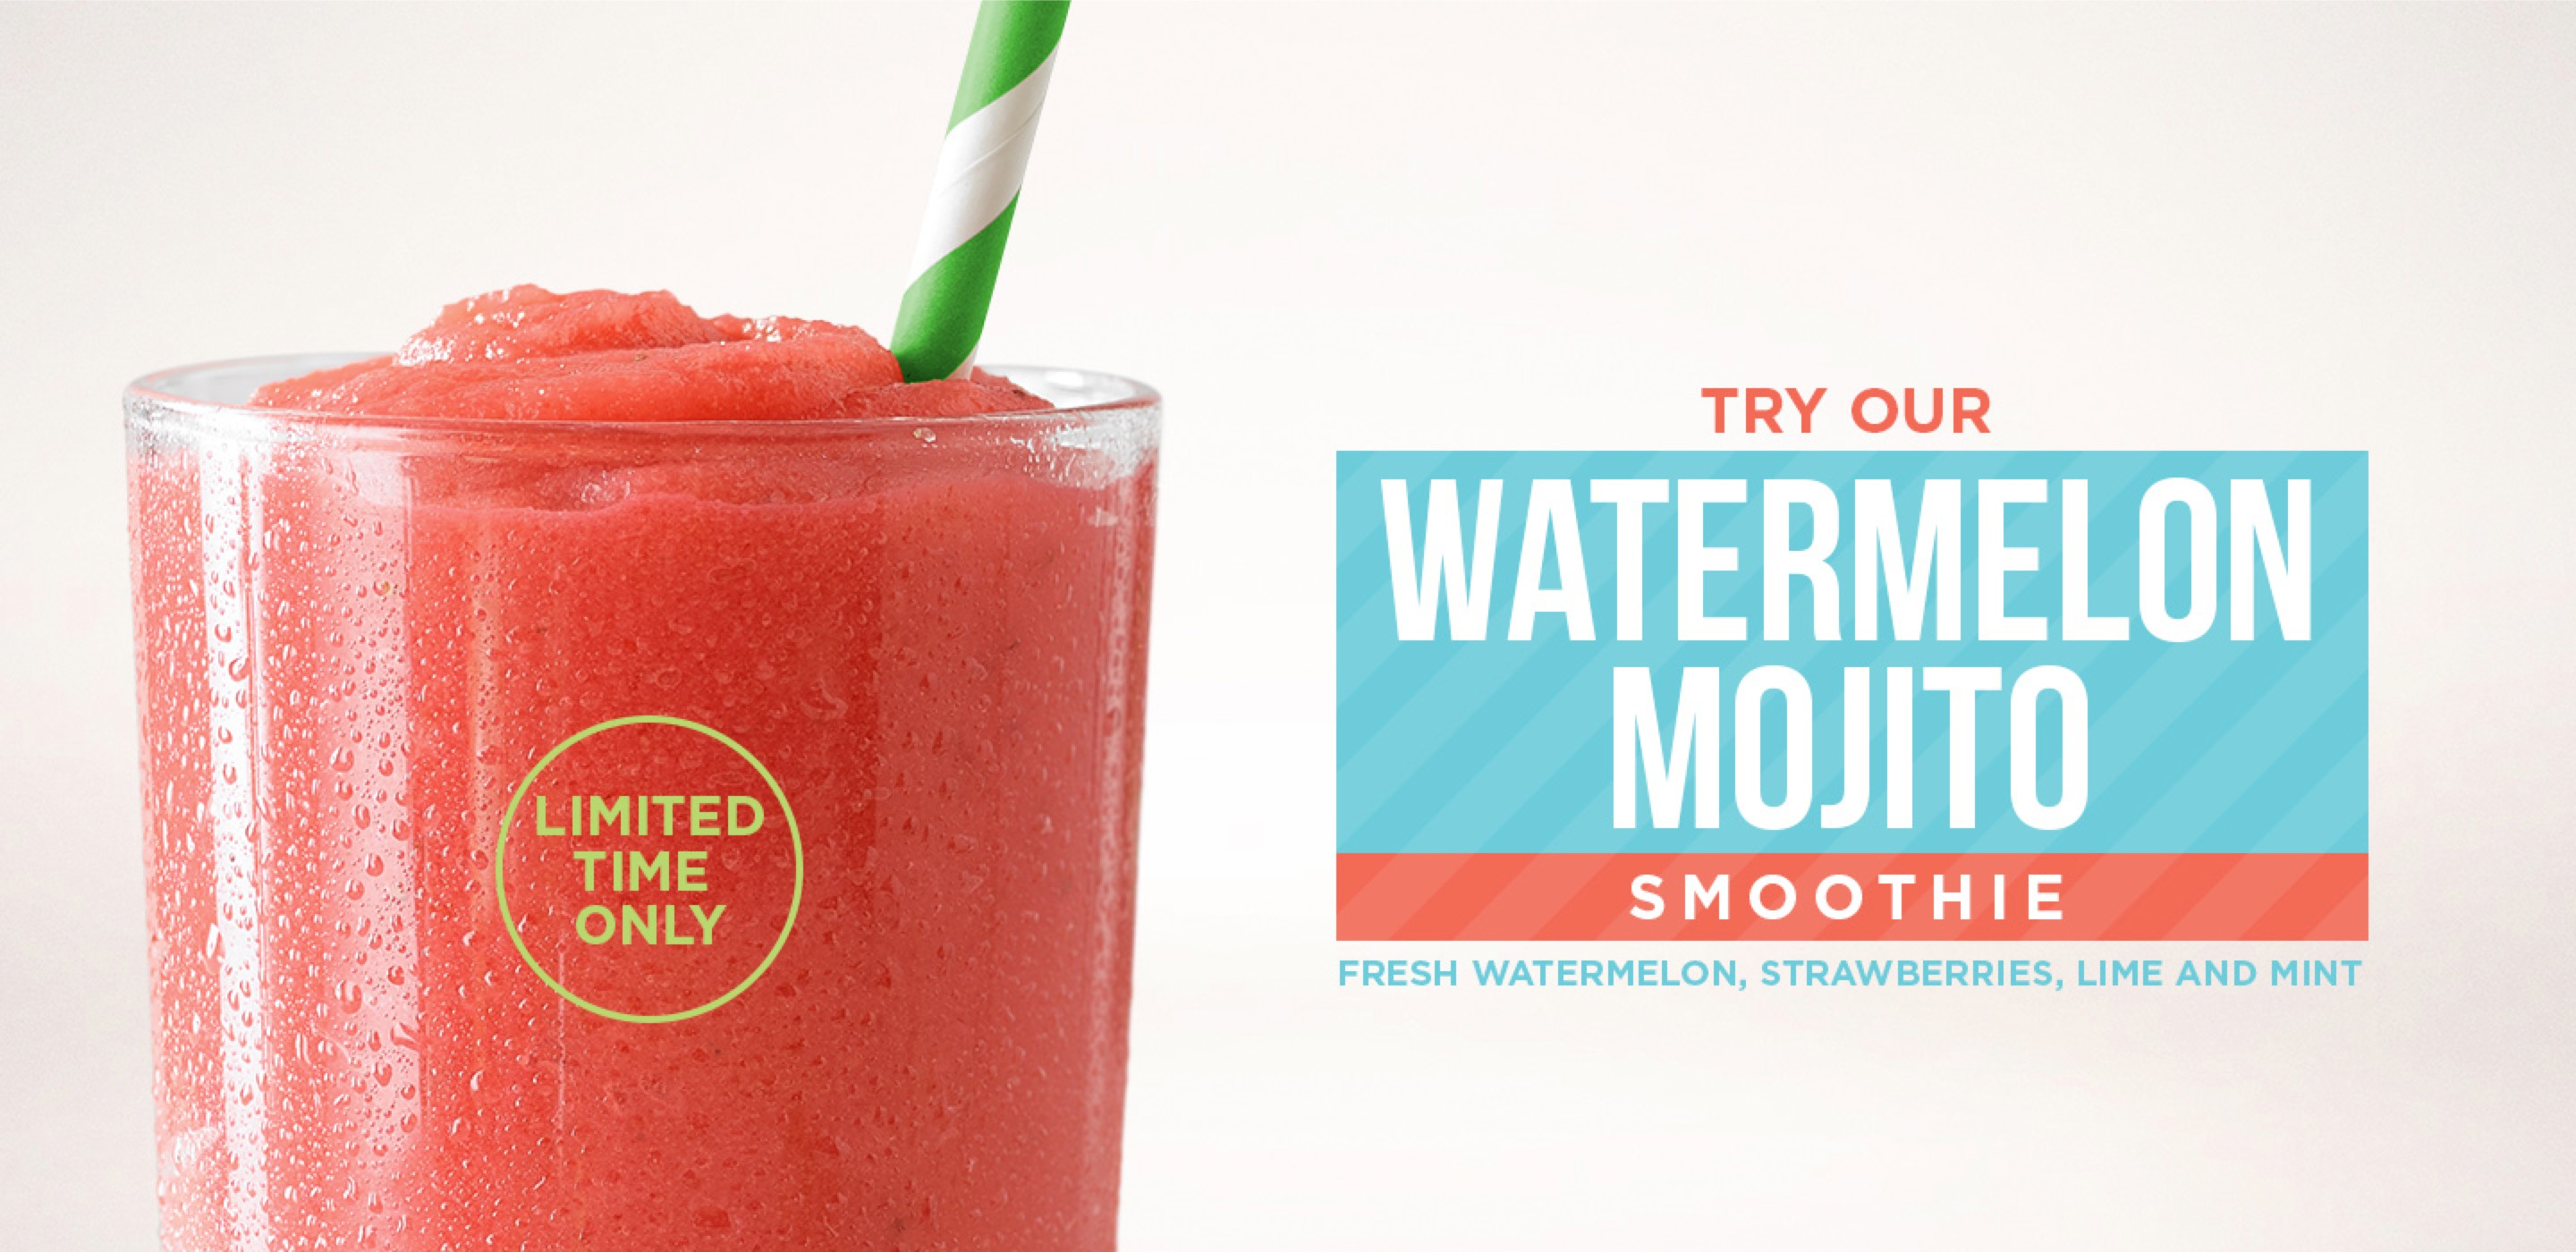 Try our Watermelon